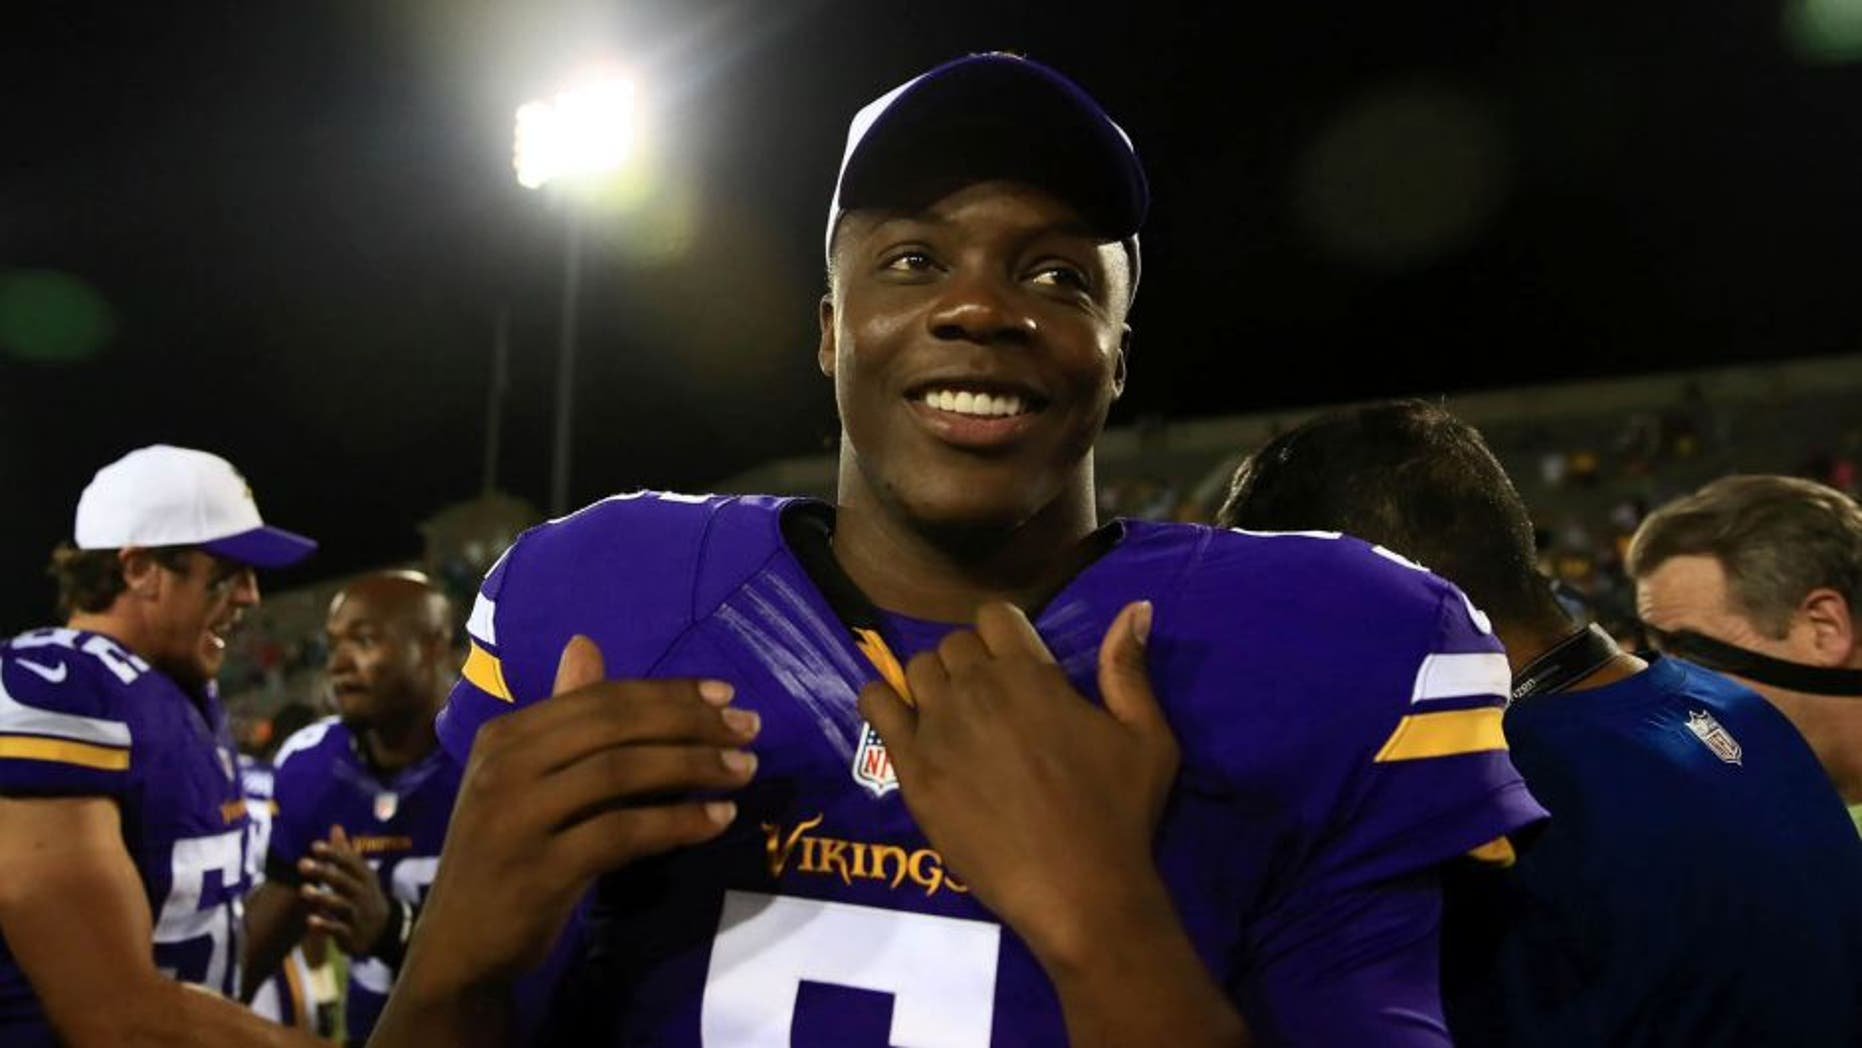 Minnesota Vikings quarterback Teddy Bridgewater walks off the field after defeating the Pittsburgh Steelers 14-3 at Tom Benson Hall of Fame Stadium in Canton, Ohio, on Sunday, August 9, 2015.